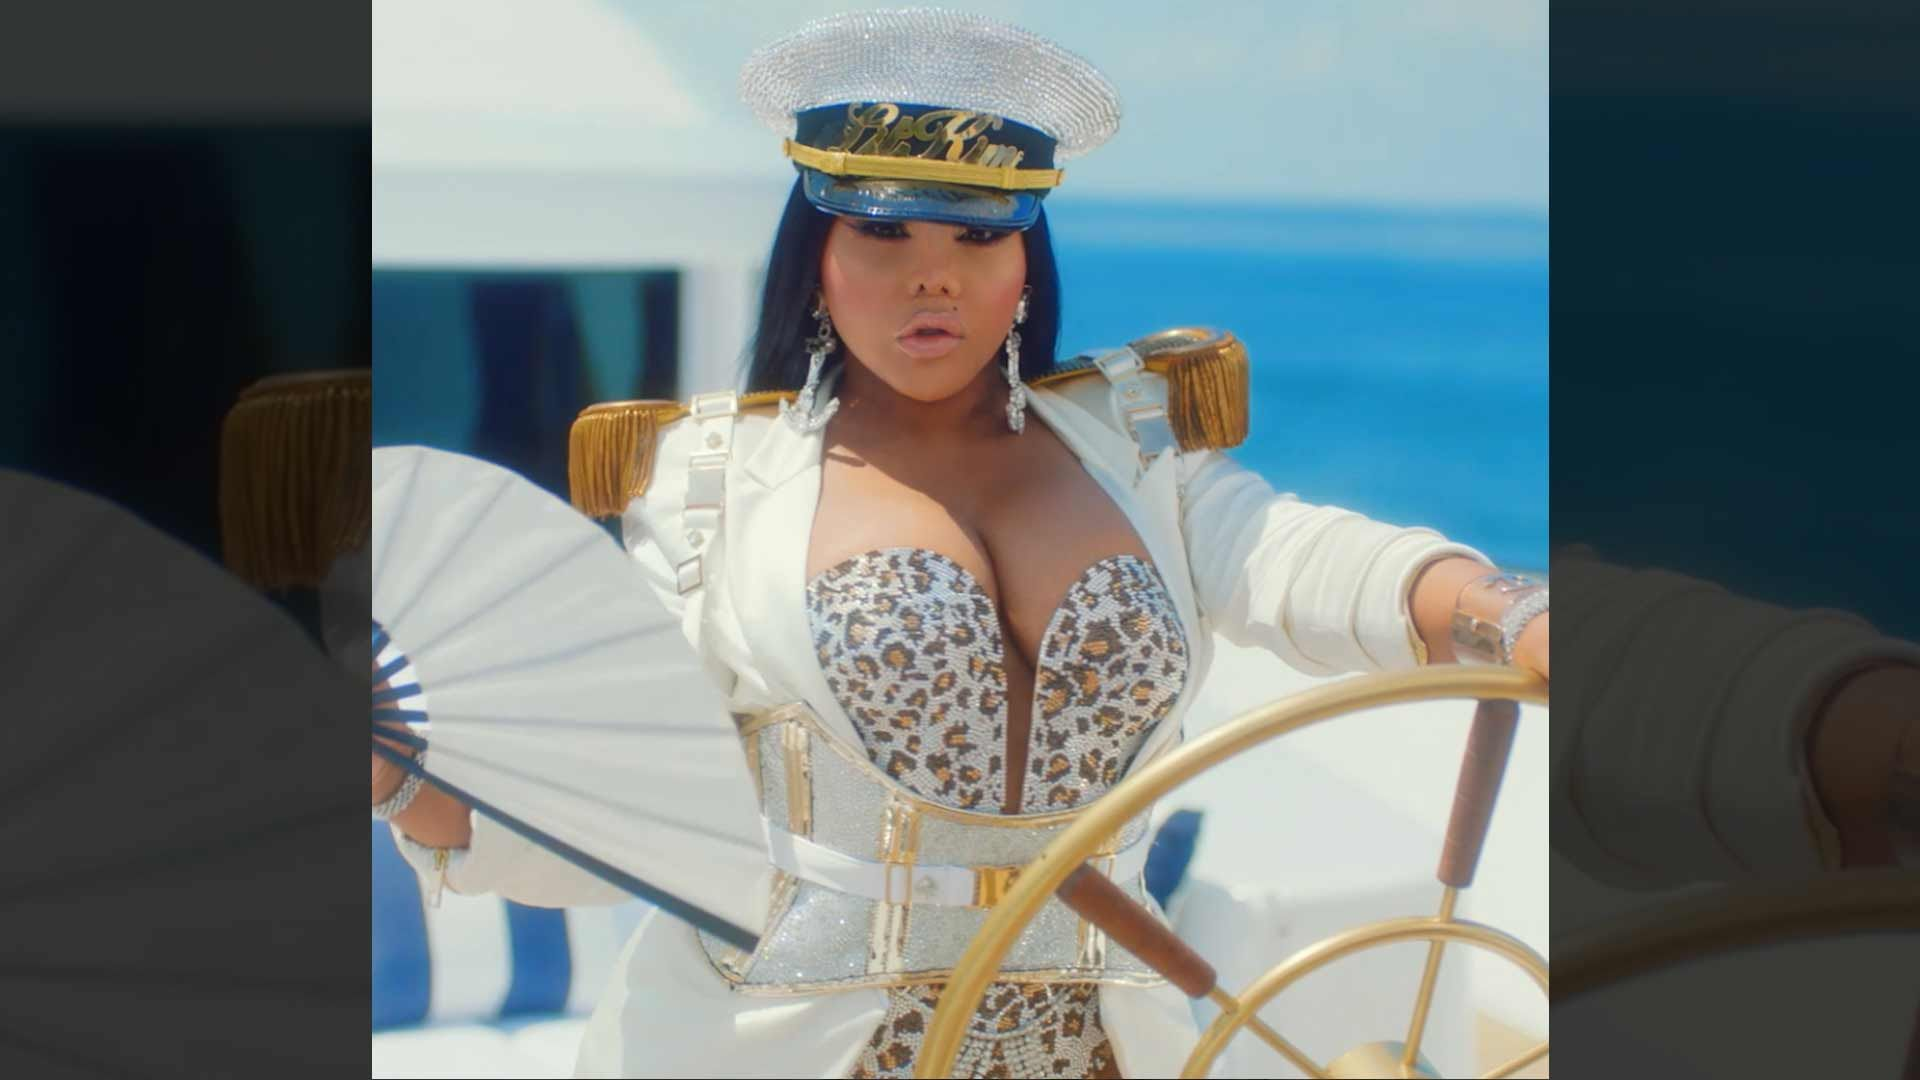 Lil Kim Plays Yacht Captain in Teaser for VH1 Reality Show 'Girls Cruise'